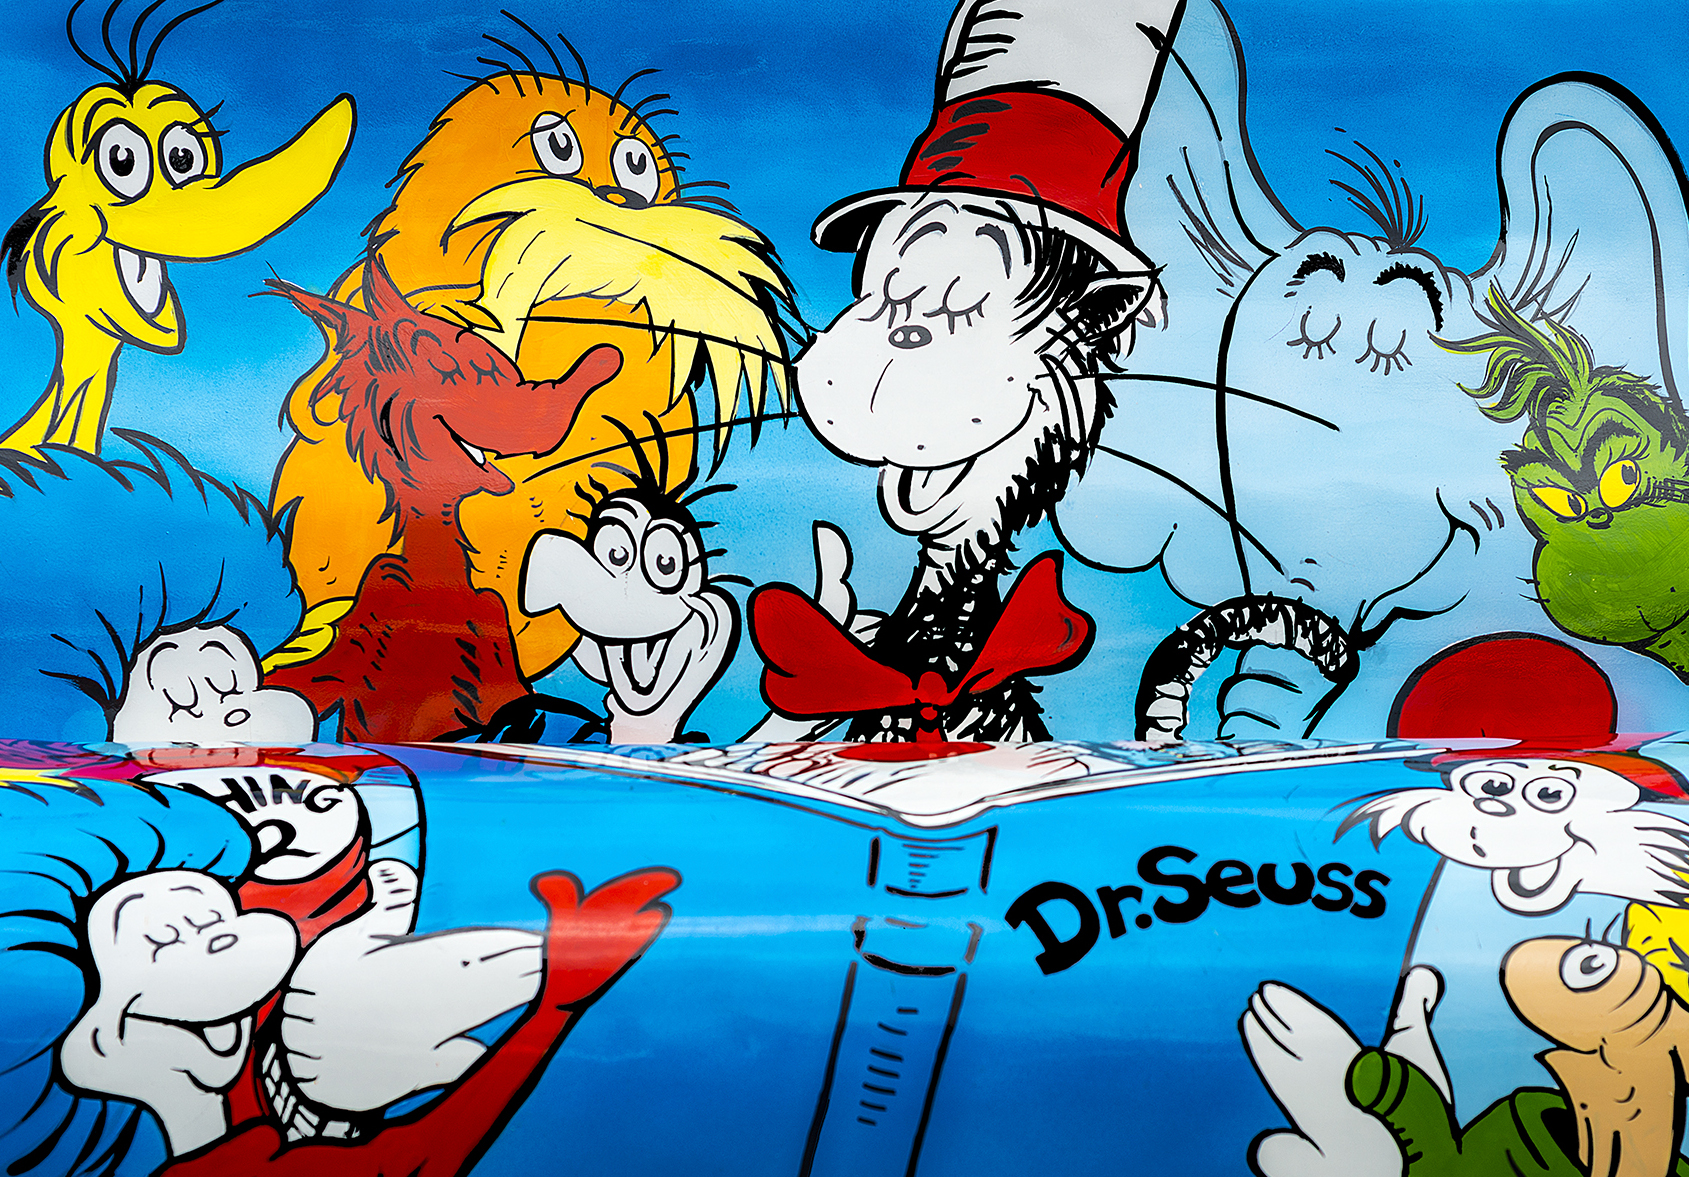 In Dr Seuss Children S Books A Commitment To Social Justice That Remains Relevant Today